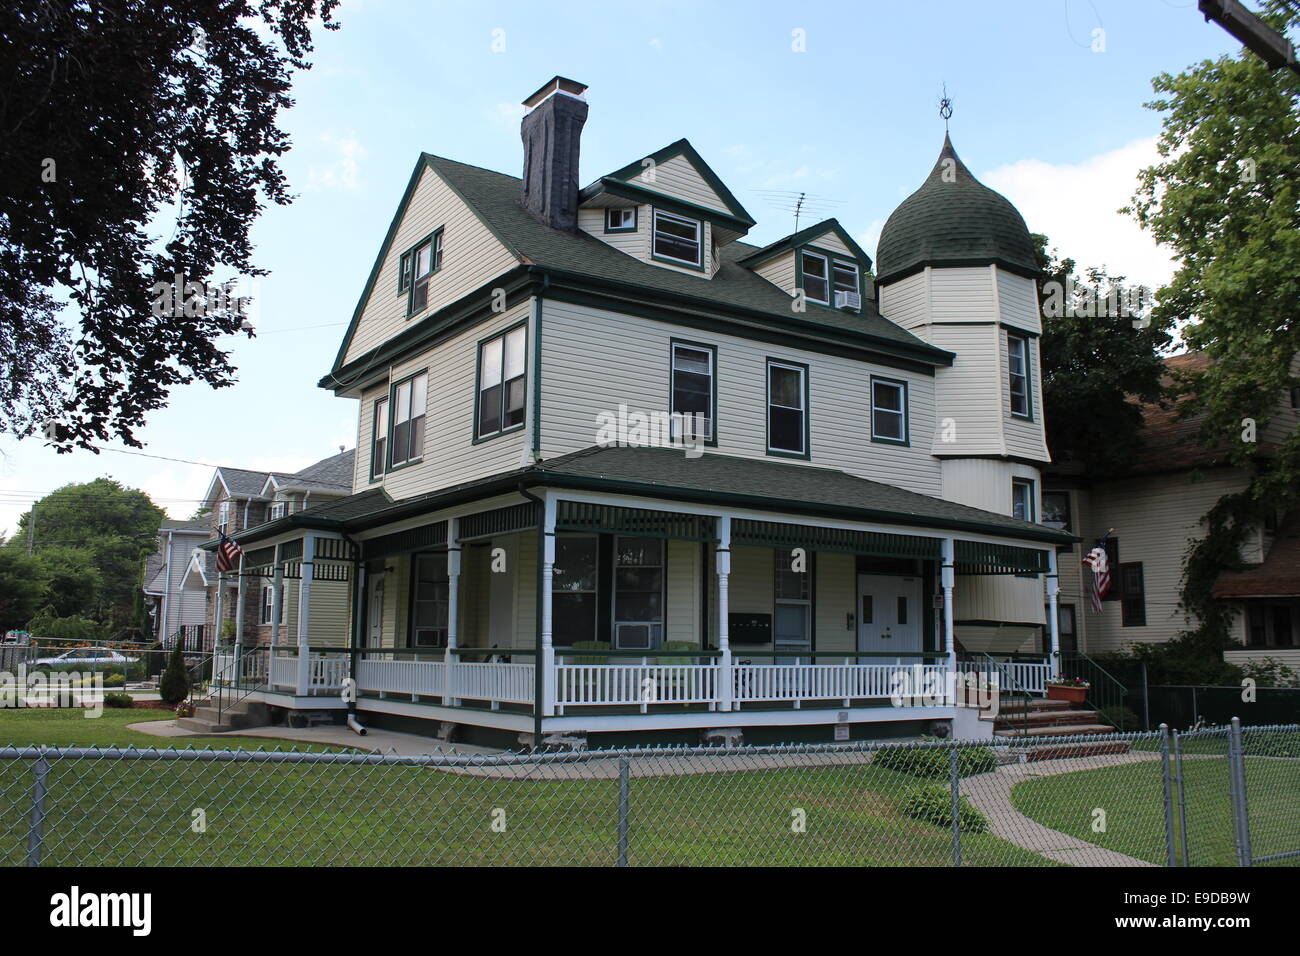 Queen Anne House Built In The 1880s In Clifton Staten